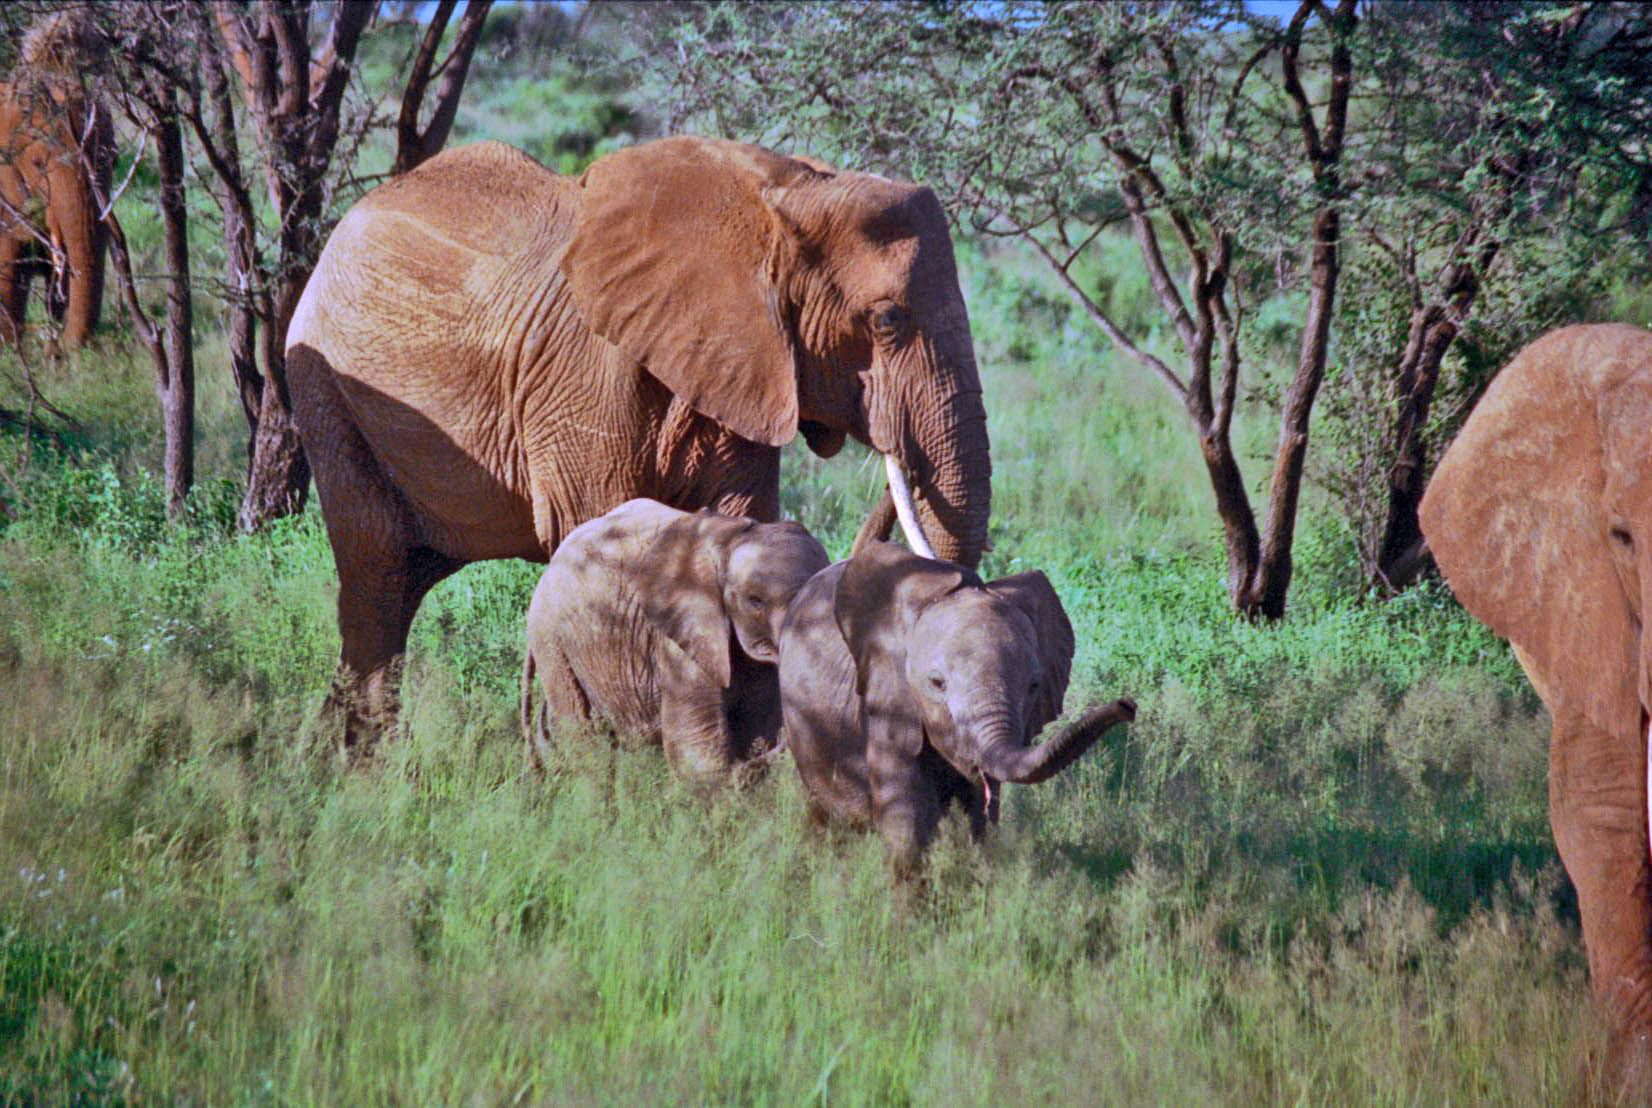 A continuing photographic series on the daily lives of elephants. Samburu elephants gain their distinctive color from the reddish mud of the Ewaso Nyiro River and the region's soilthey dustover ...